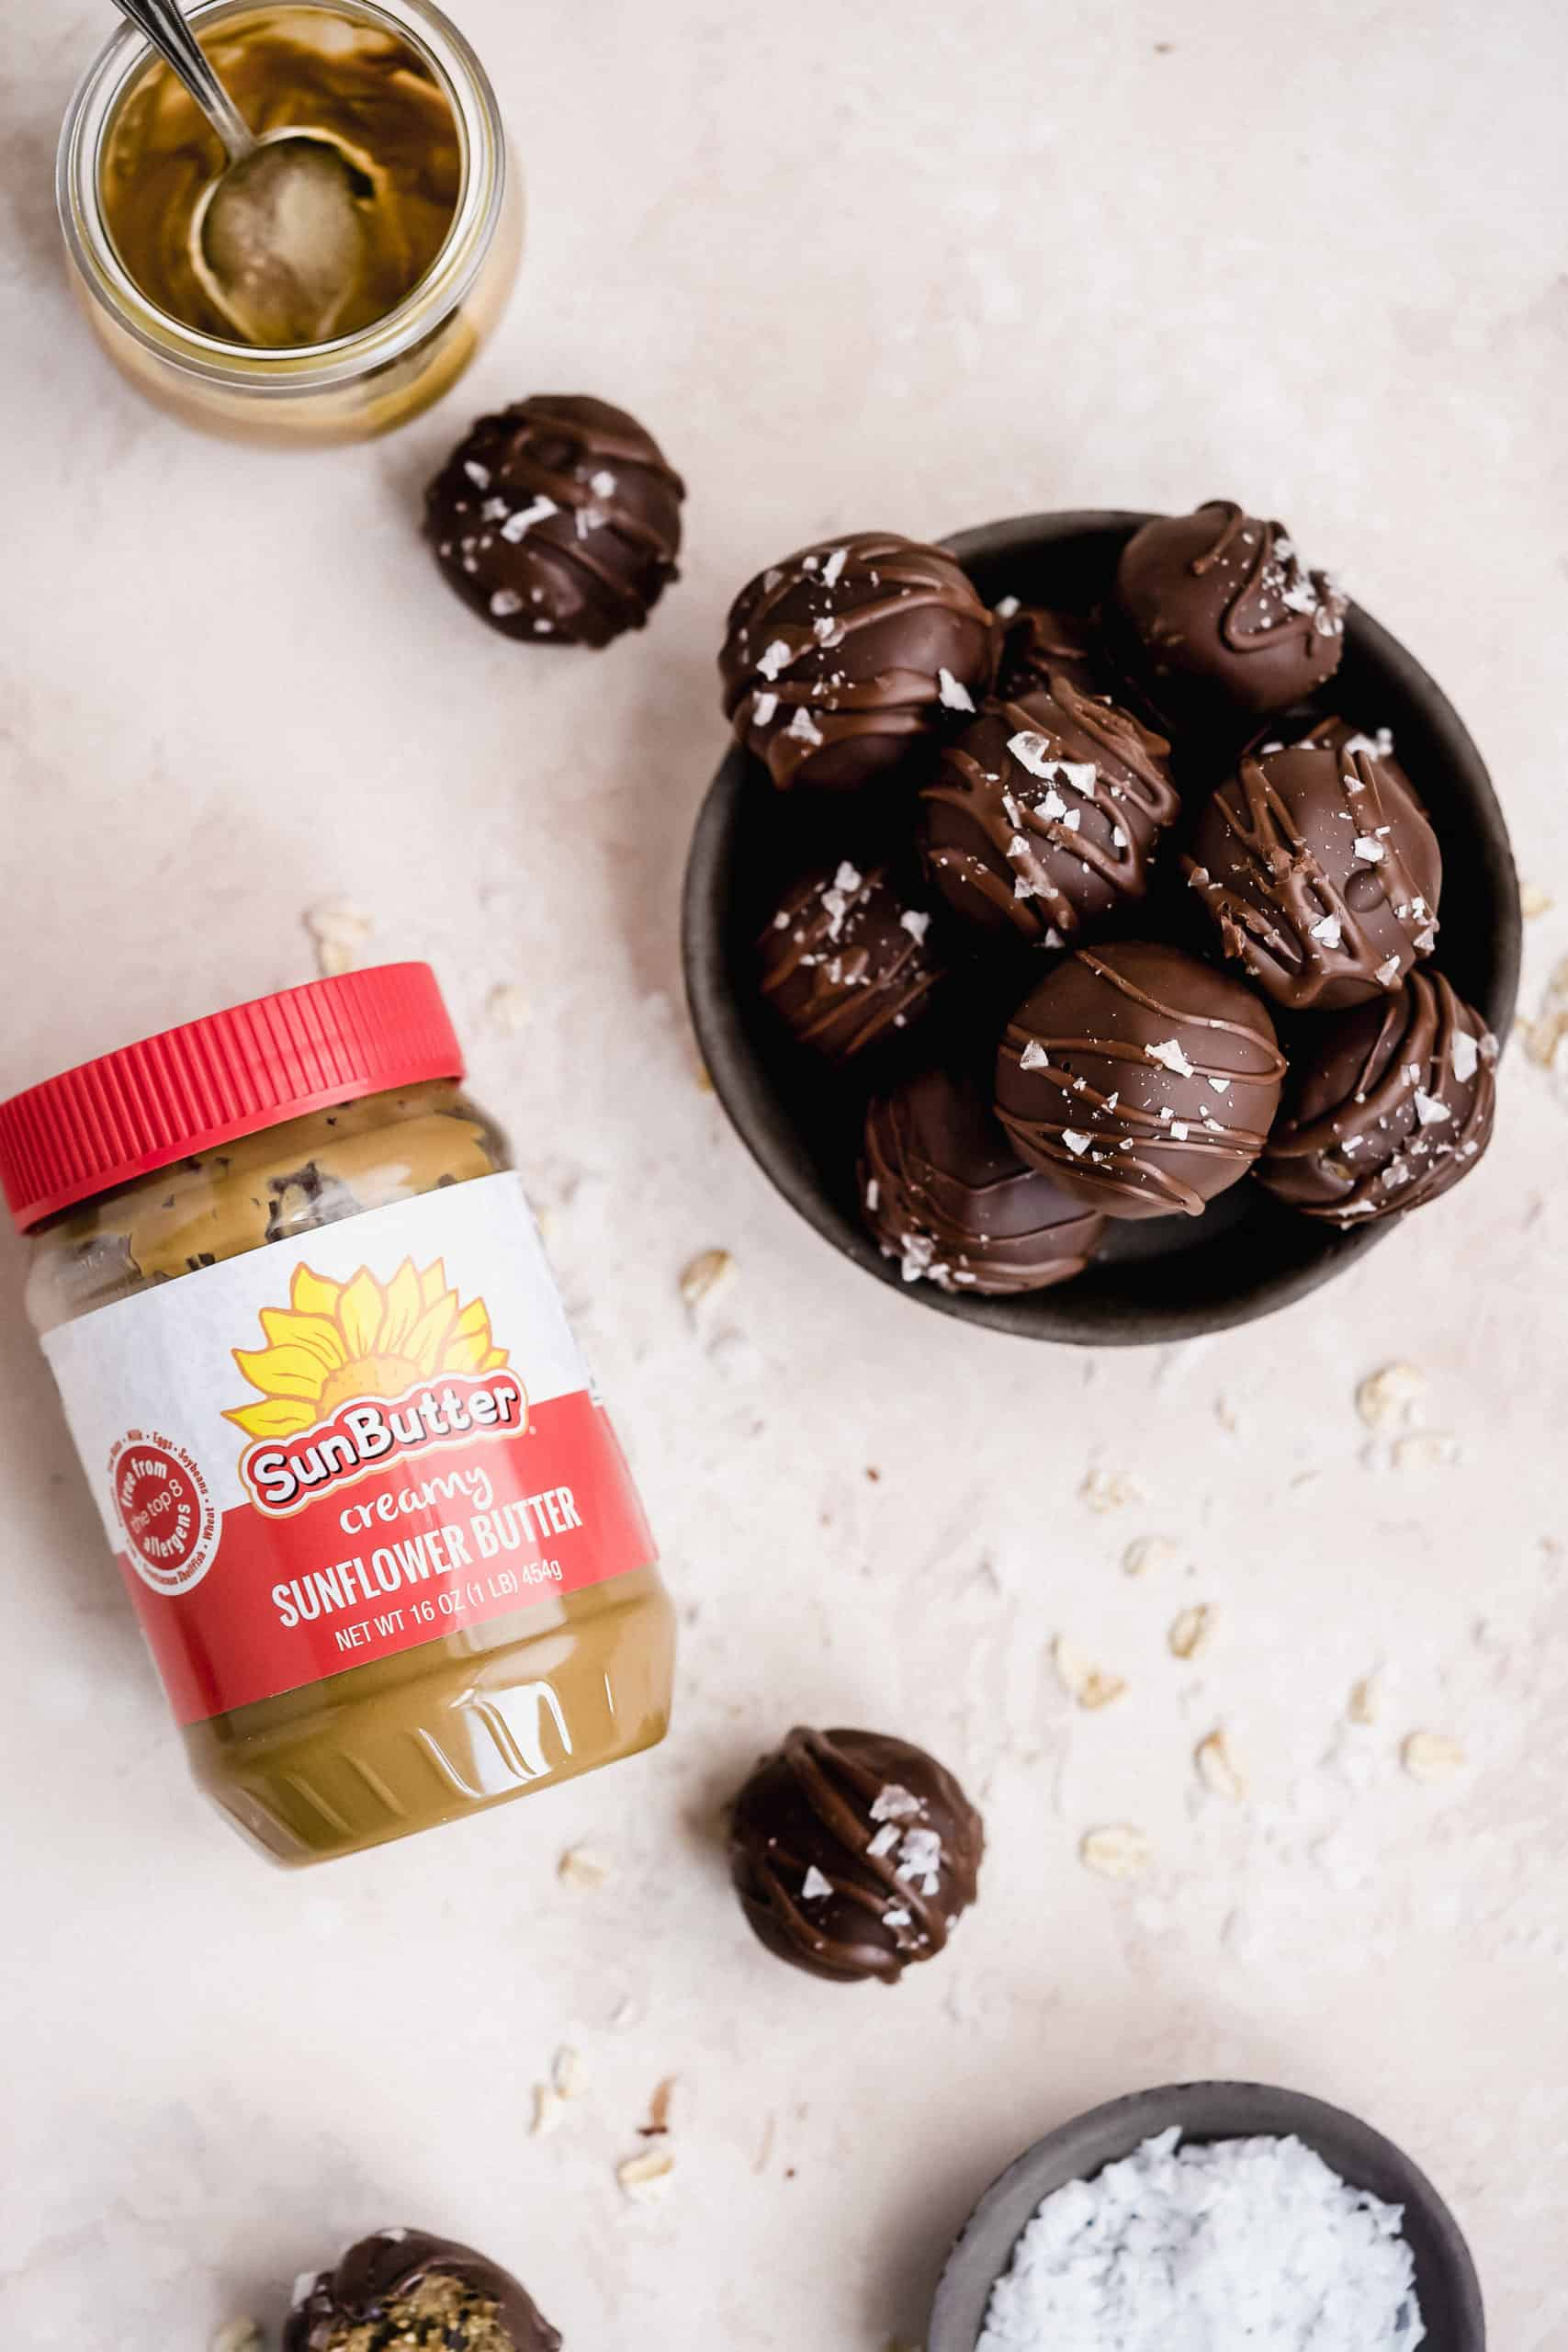 Overhead photo of a bowl of Oatmeal Chocolate Chip Cookie Dough Bites with a jar of SunButter Creamy Sunflower Butter laying nearby.